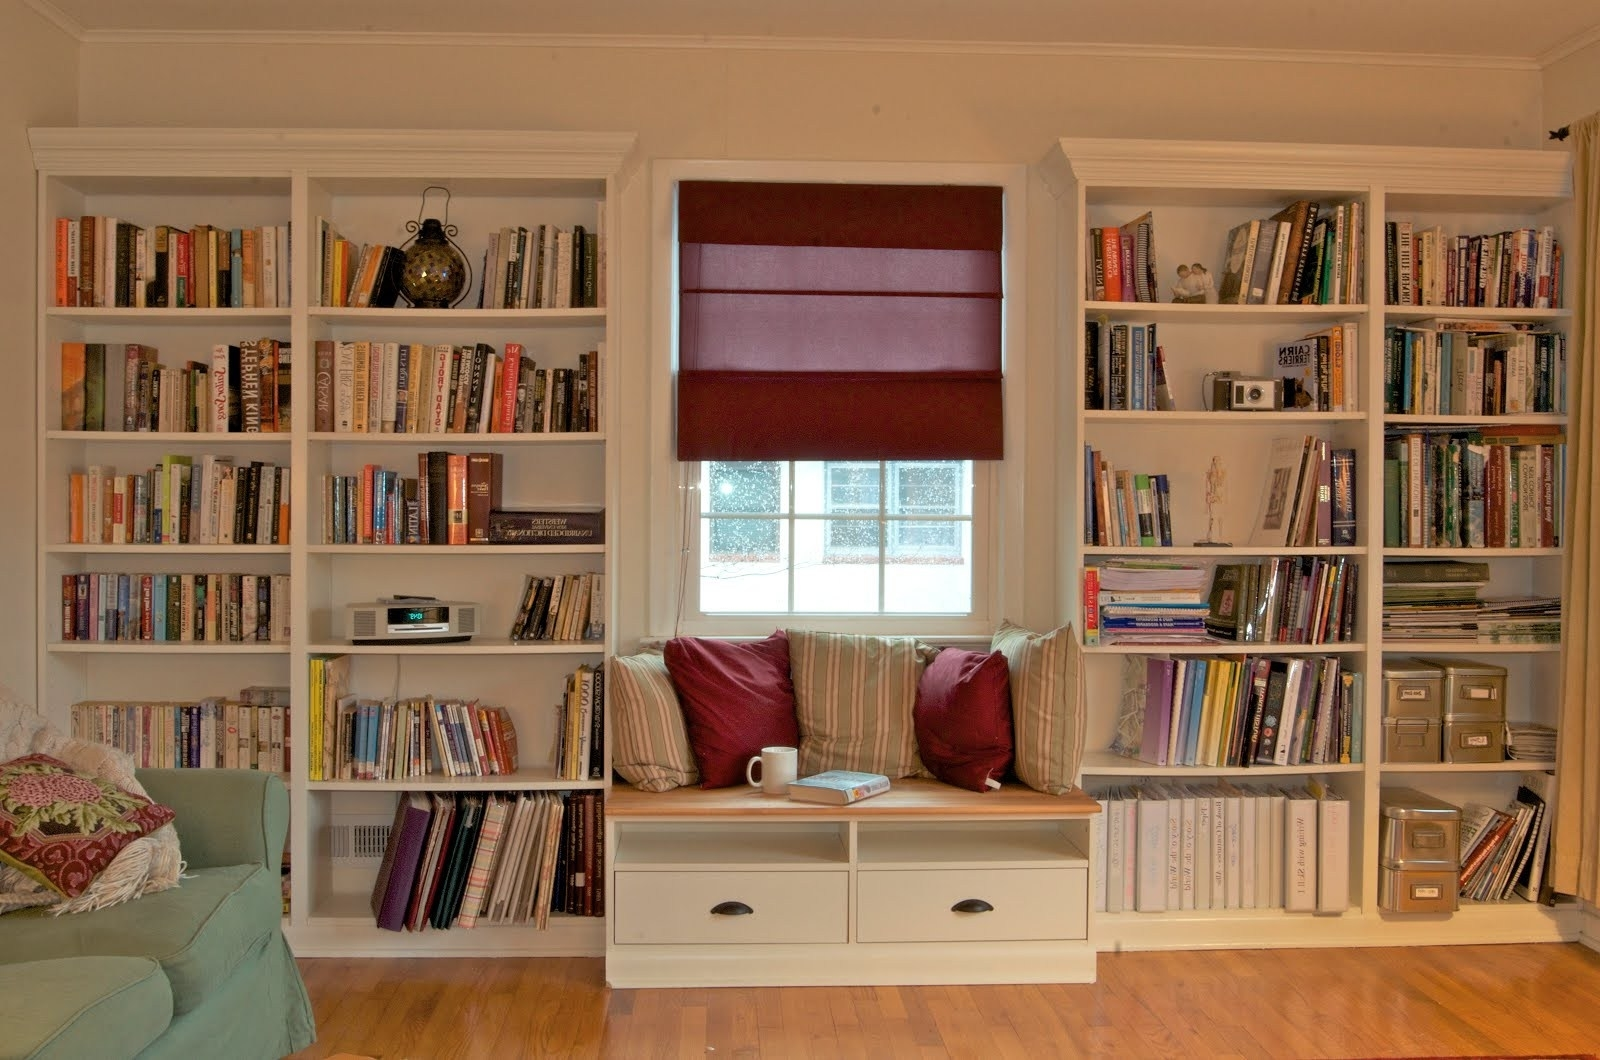 2018 Bench Bookcases Pertaining To Built In Bookshelves With Window Seat For Under $350 – Ikea Hackers (View 3 of 15)